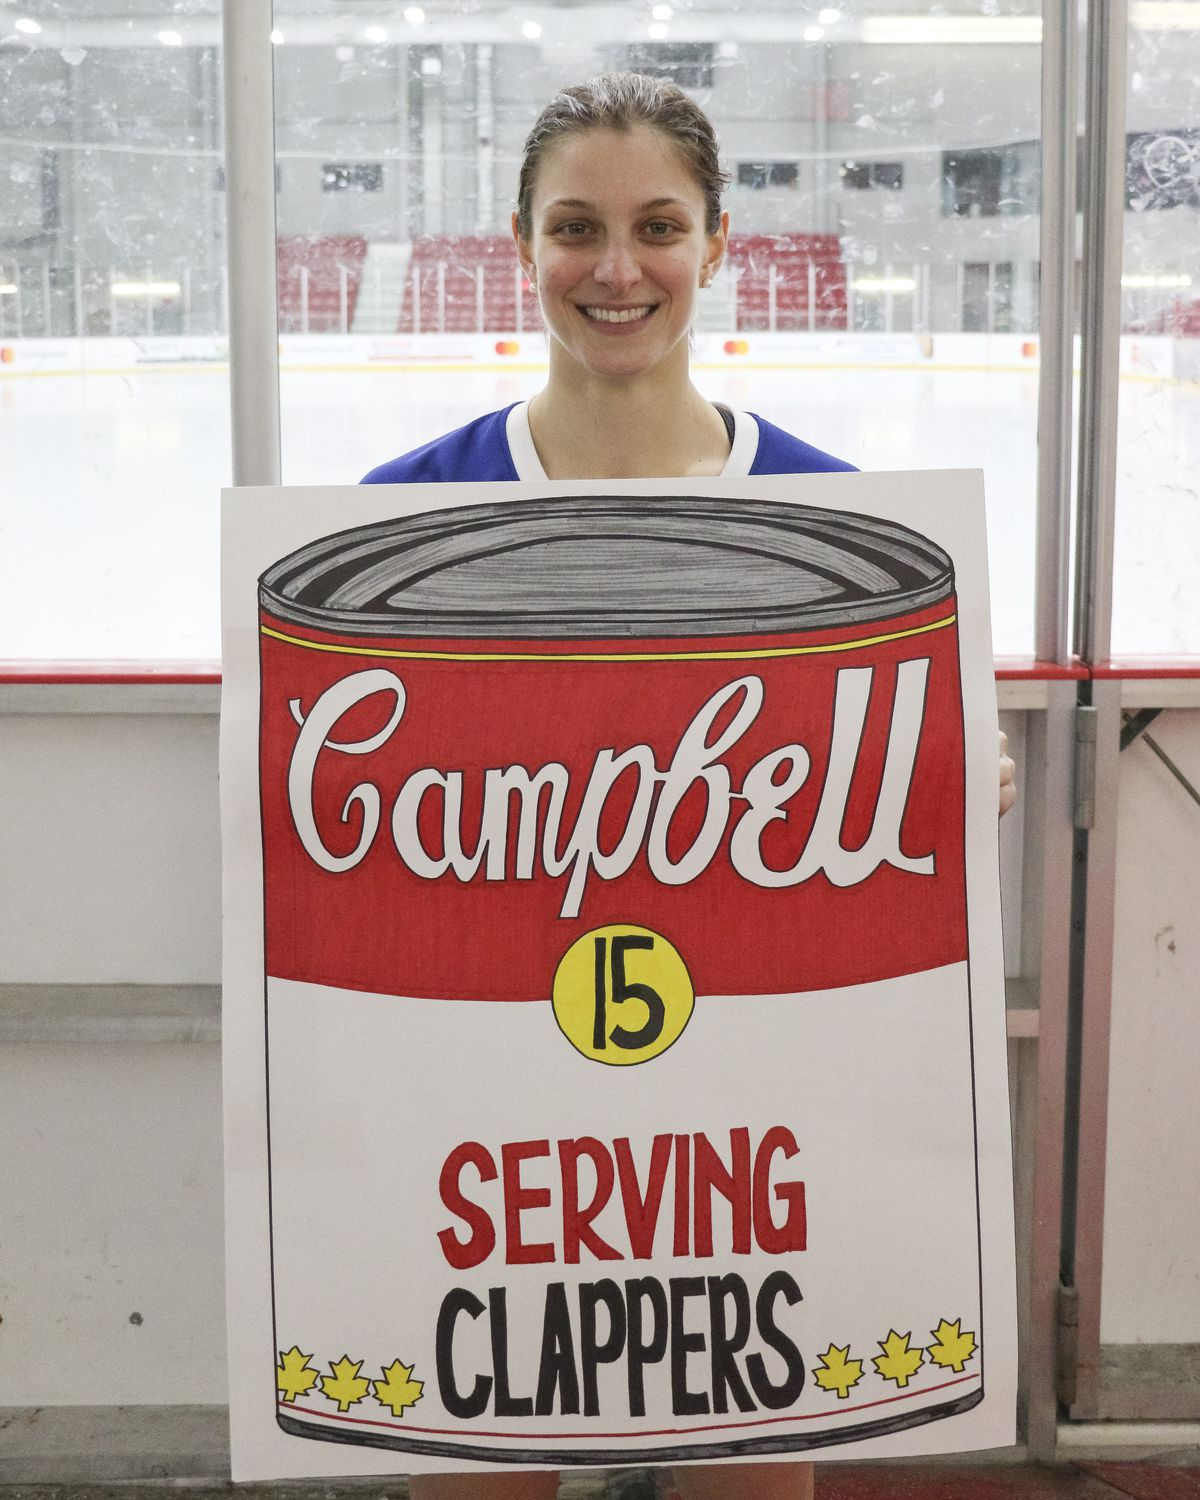 """Carlee Campbell holding a sign showing a tin of Campbell's soup that reads """"Campbell 15 SERVING CLAPPERS"""""""